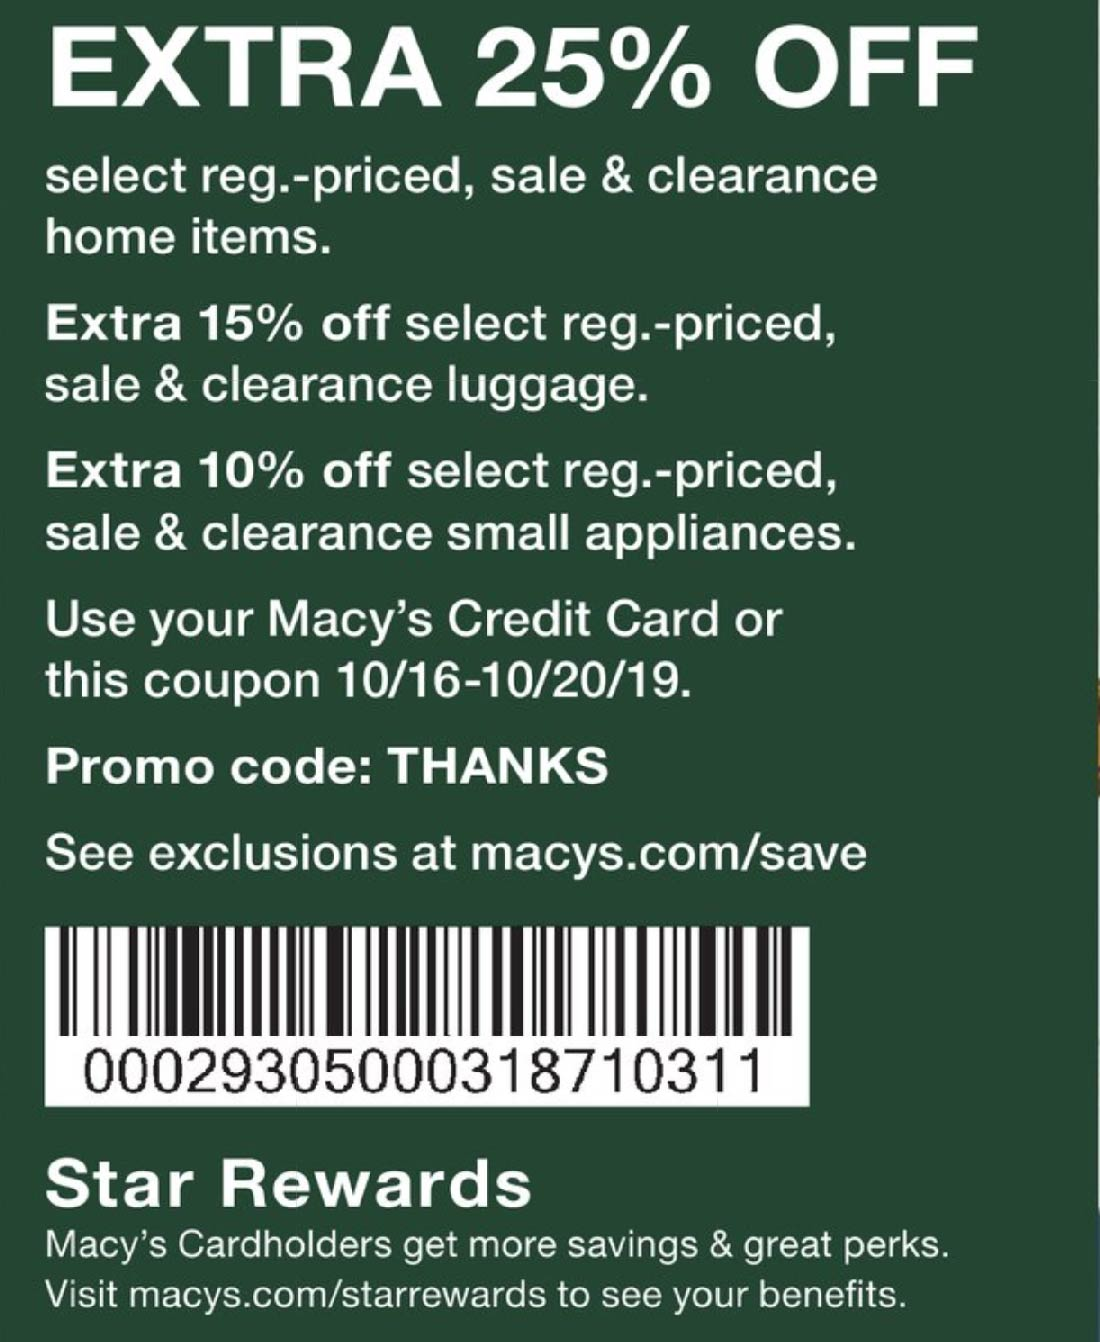 Macys Coupon January 2020 Extra 25% off at Macys, or online via promo code THANKS